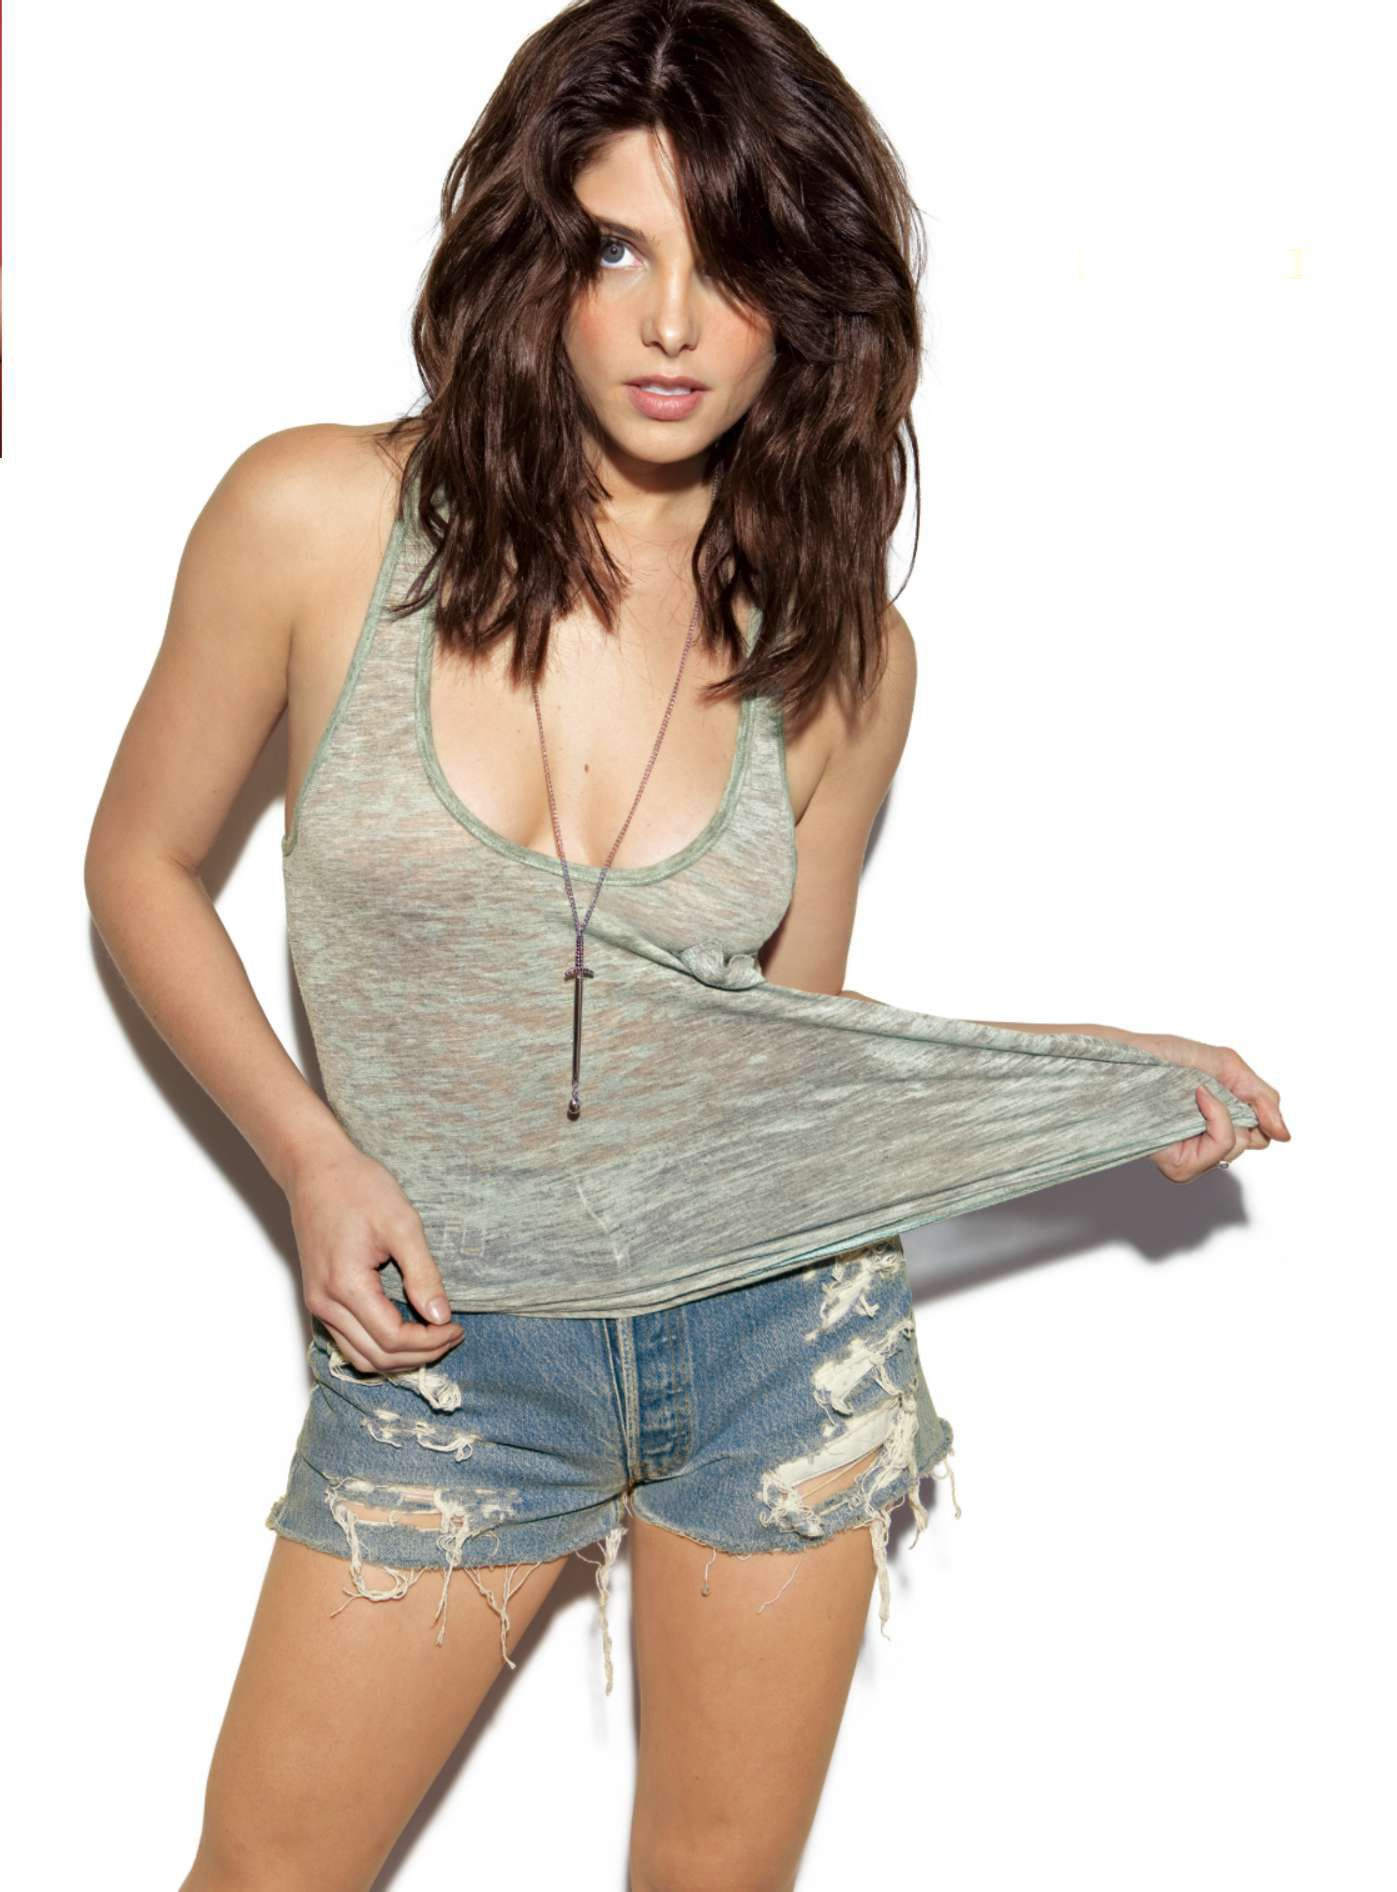 Maxim Hot 100 2010 - 29 Ashley Greene